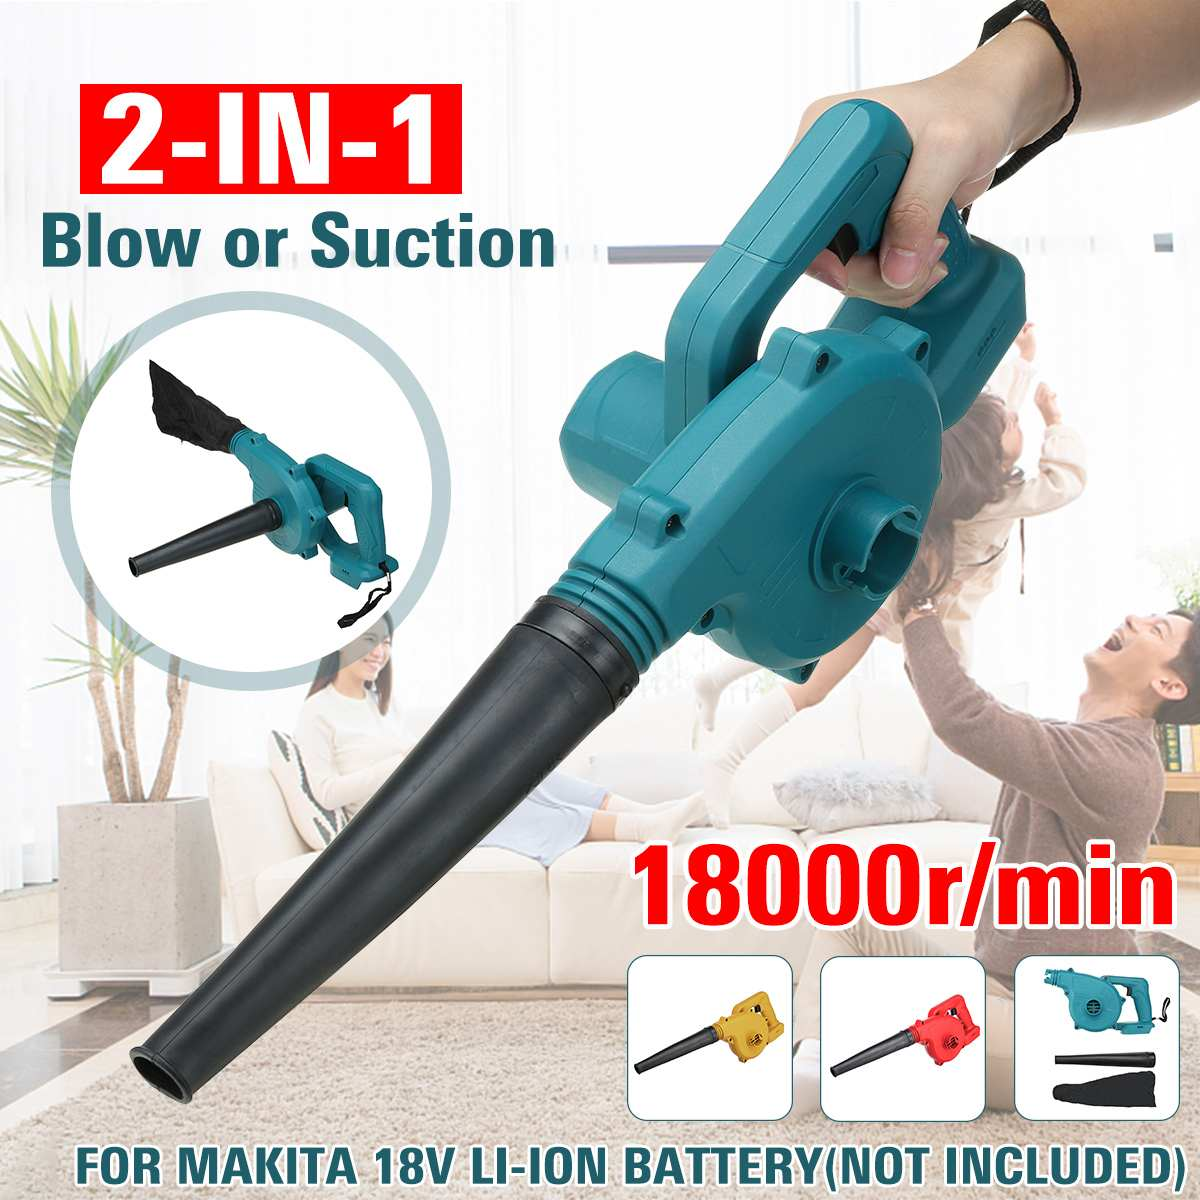 2 IN 1 600W Cordless Electric Air Blower Vacuum 18000r min Leaf Dust Collector Cleaner Power Tool for 18V Makita Battery